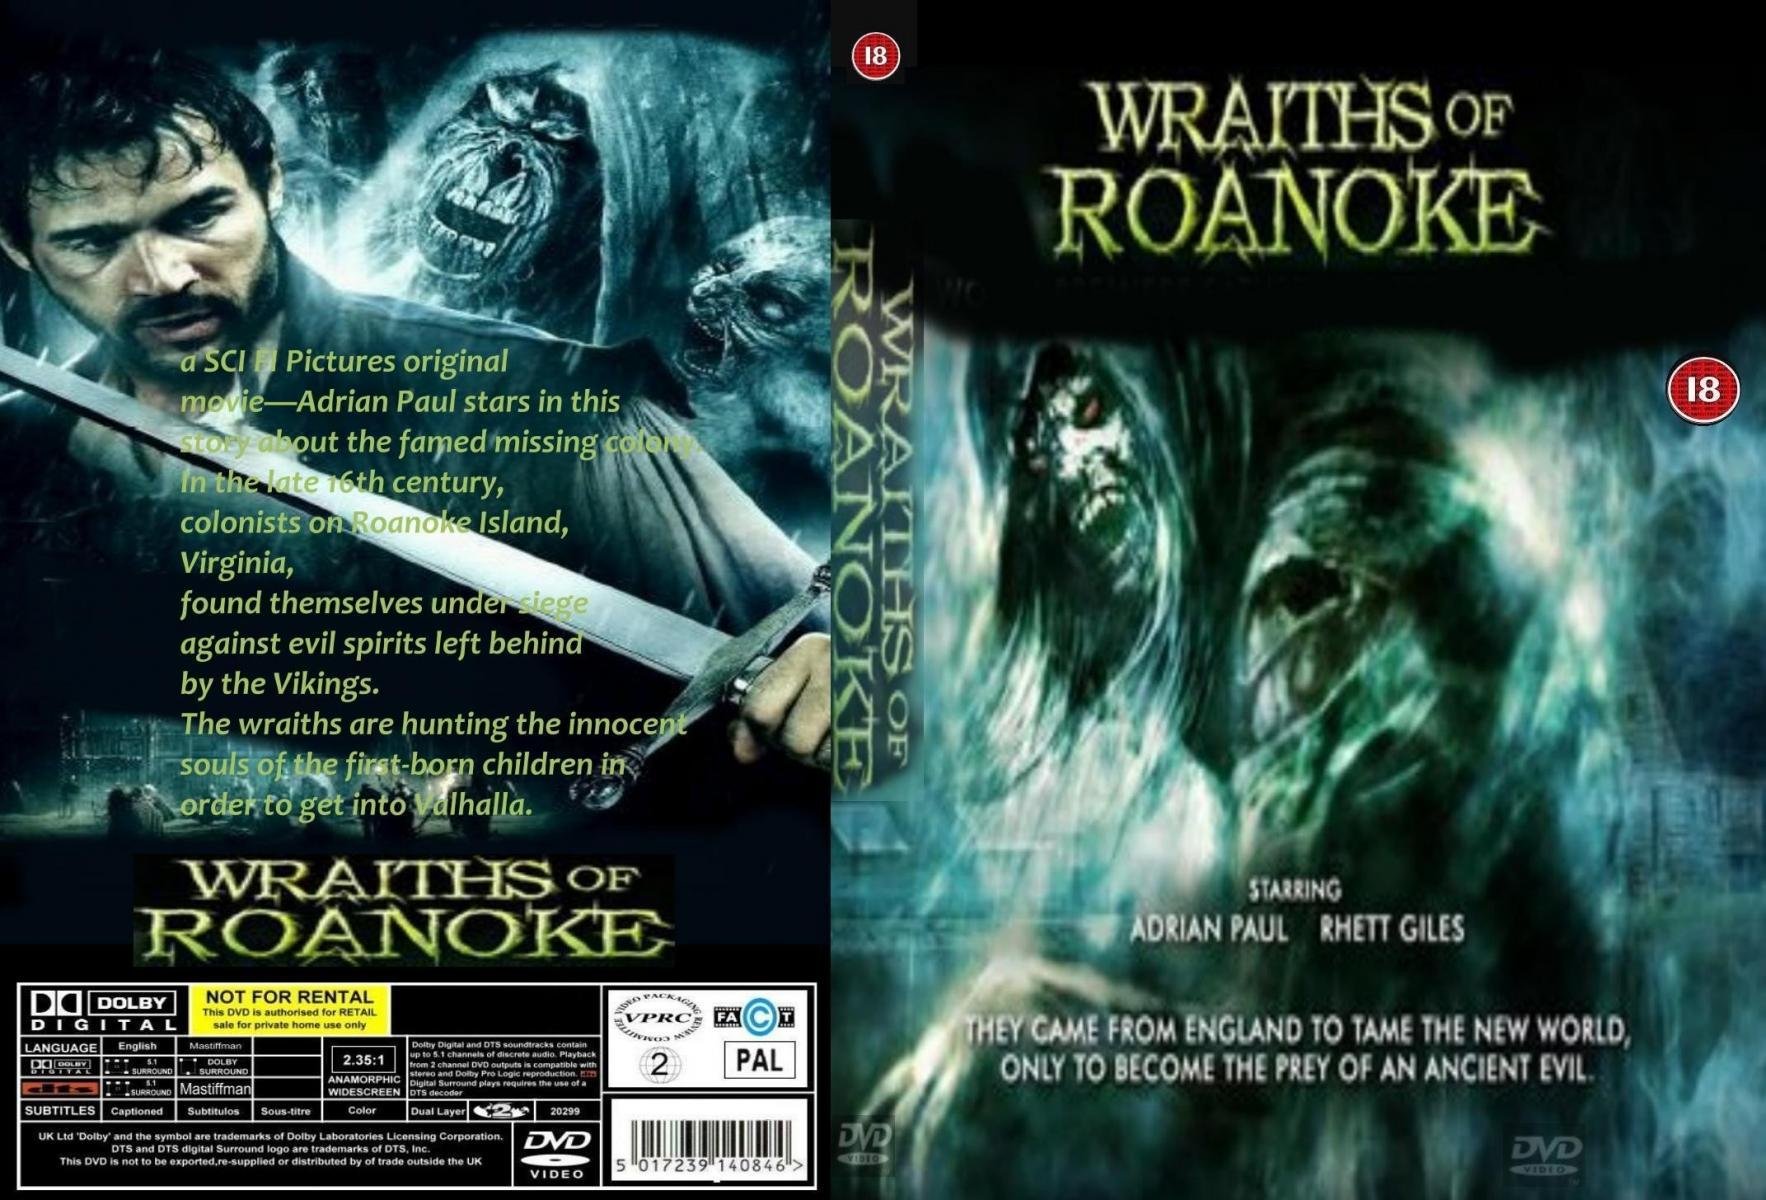 Wraiths of roanoke movie